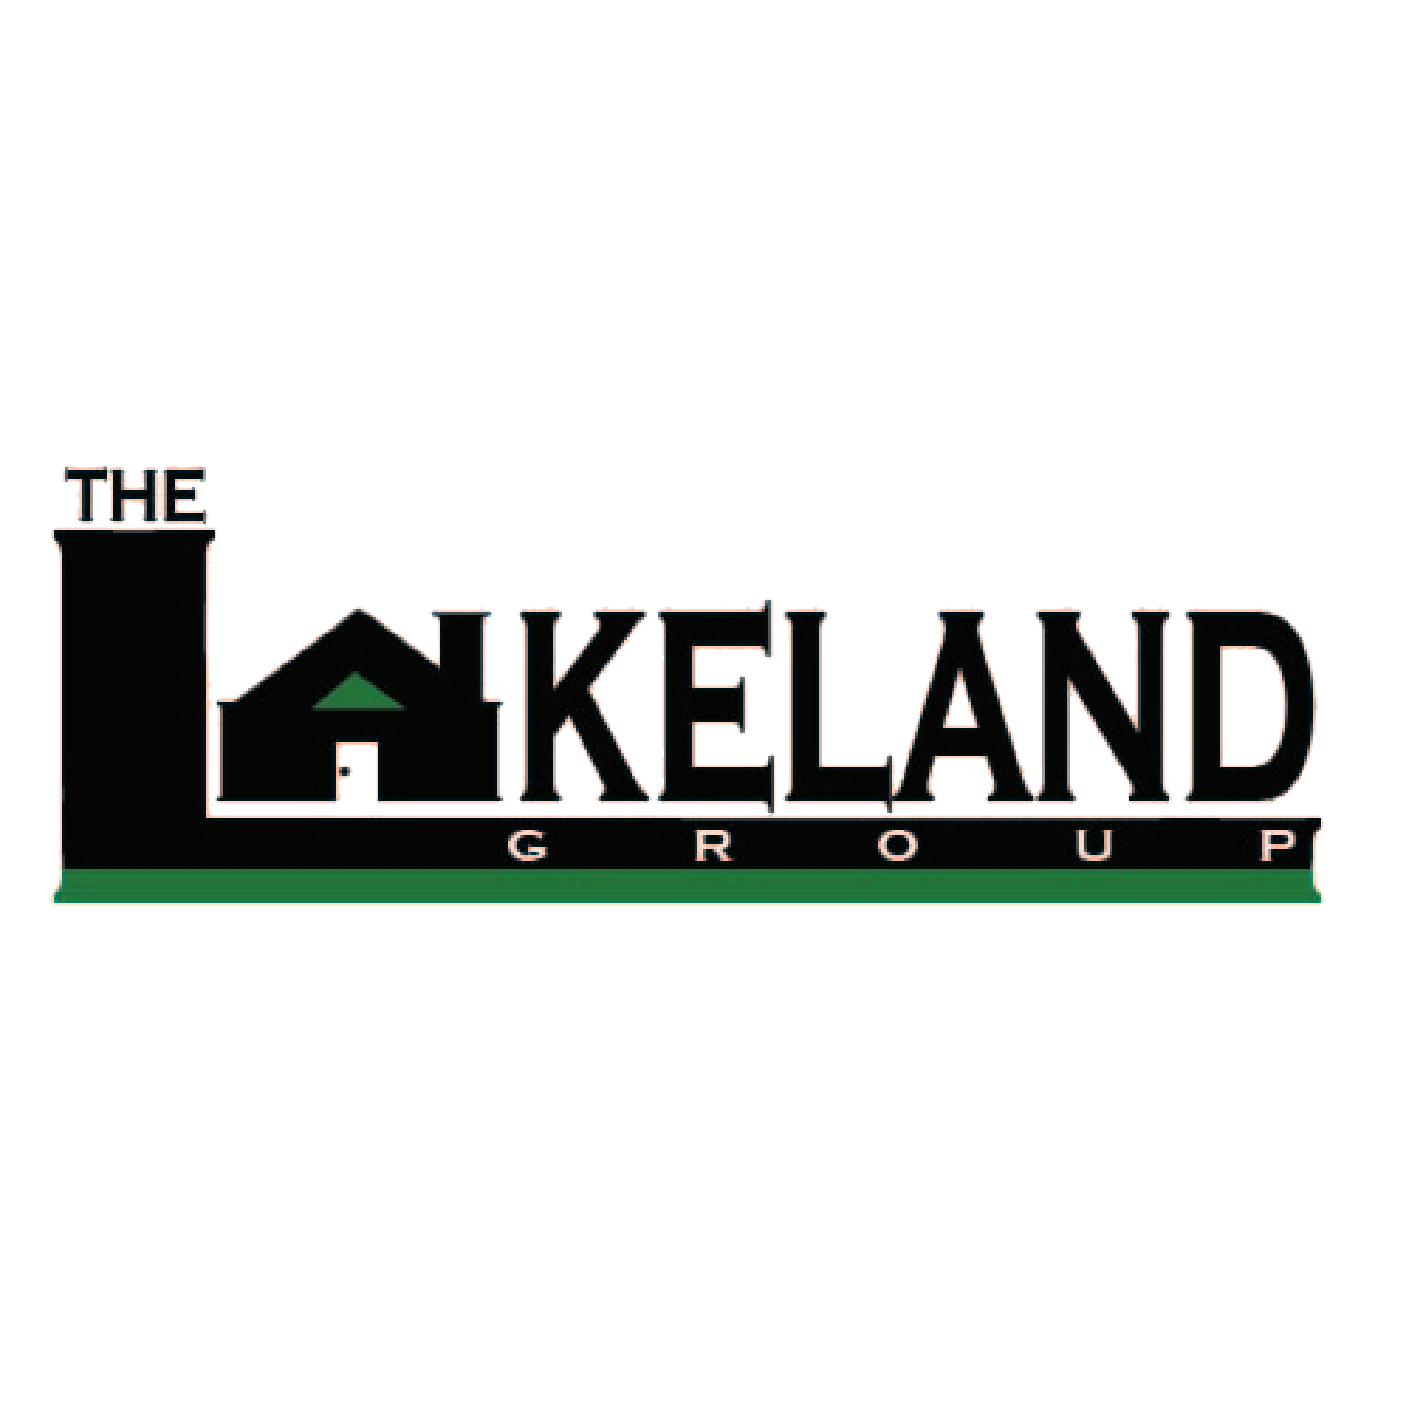 The Lakeland Group